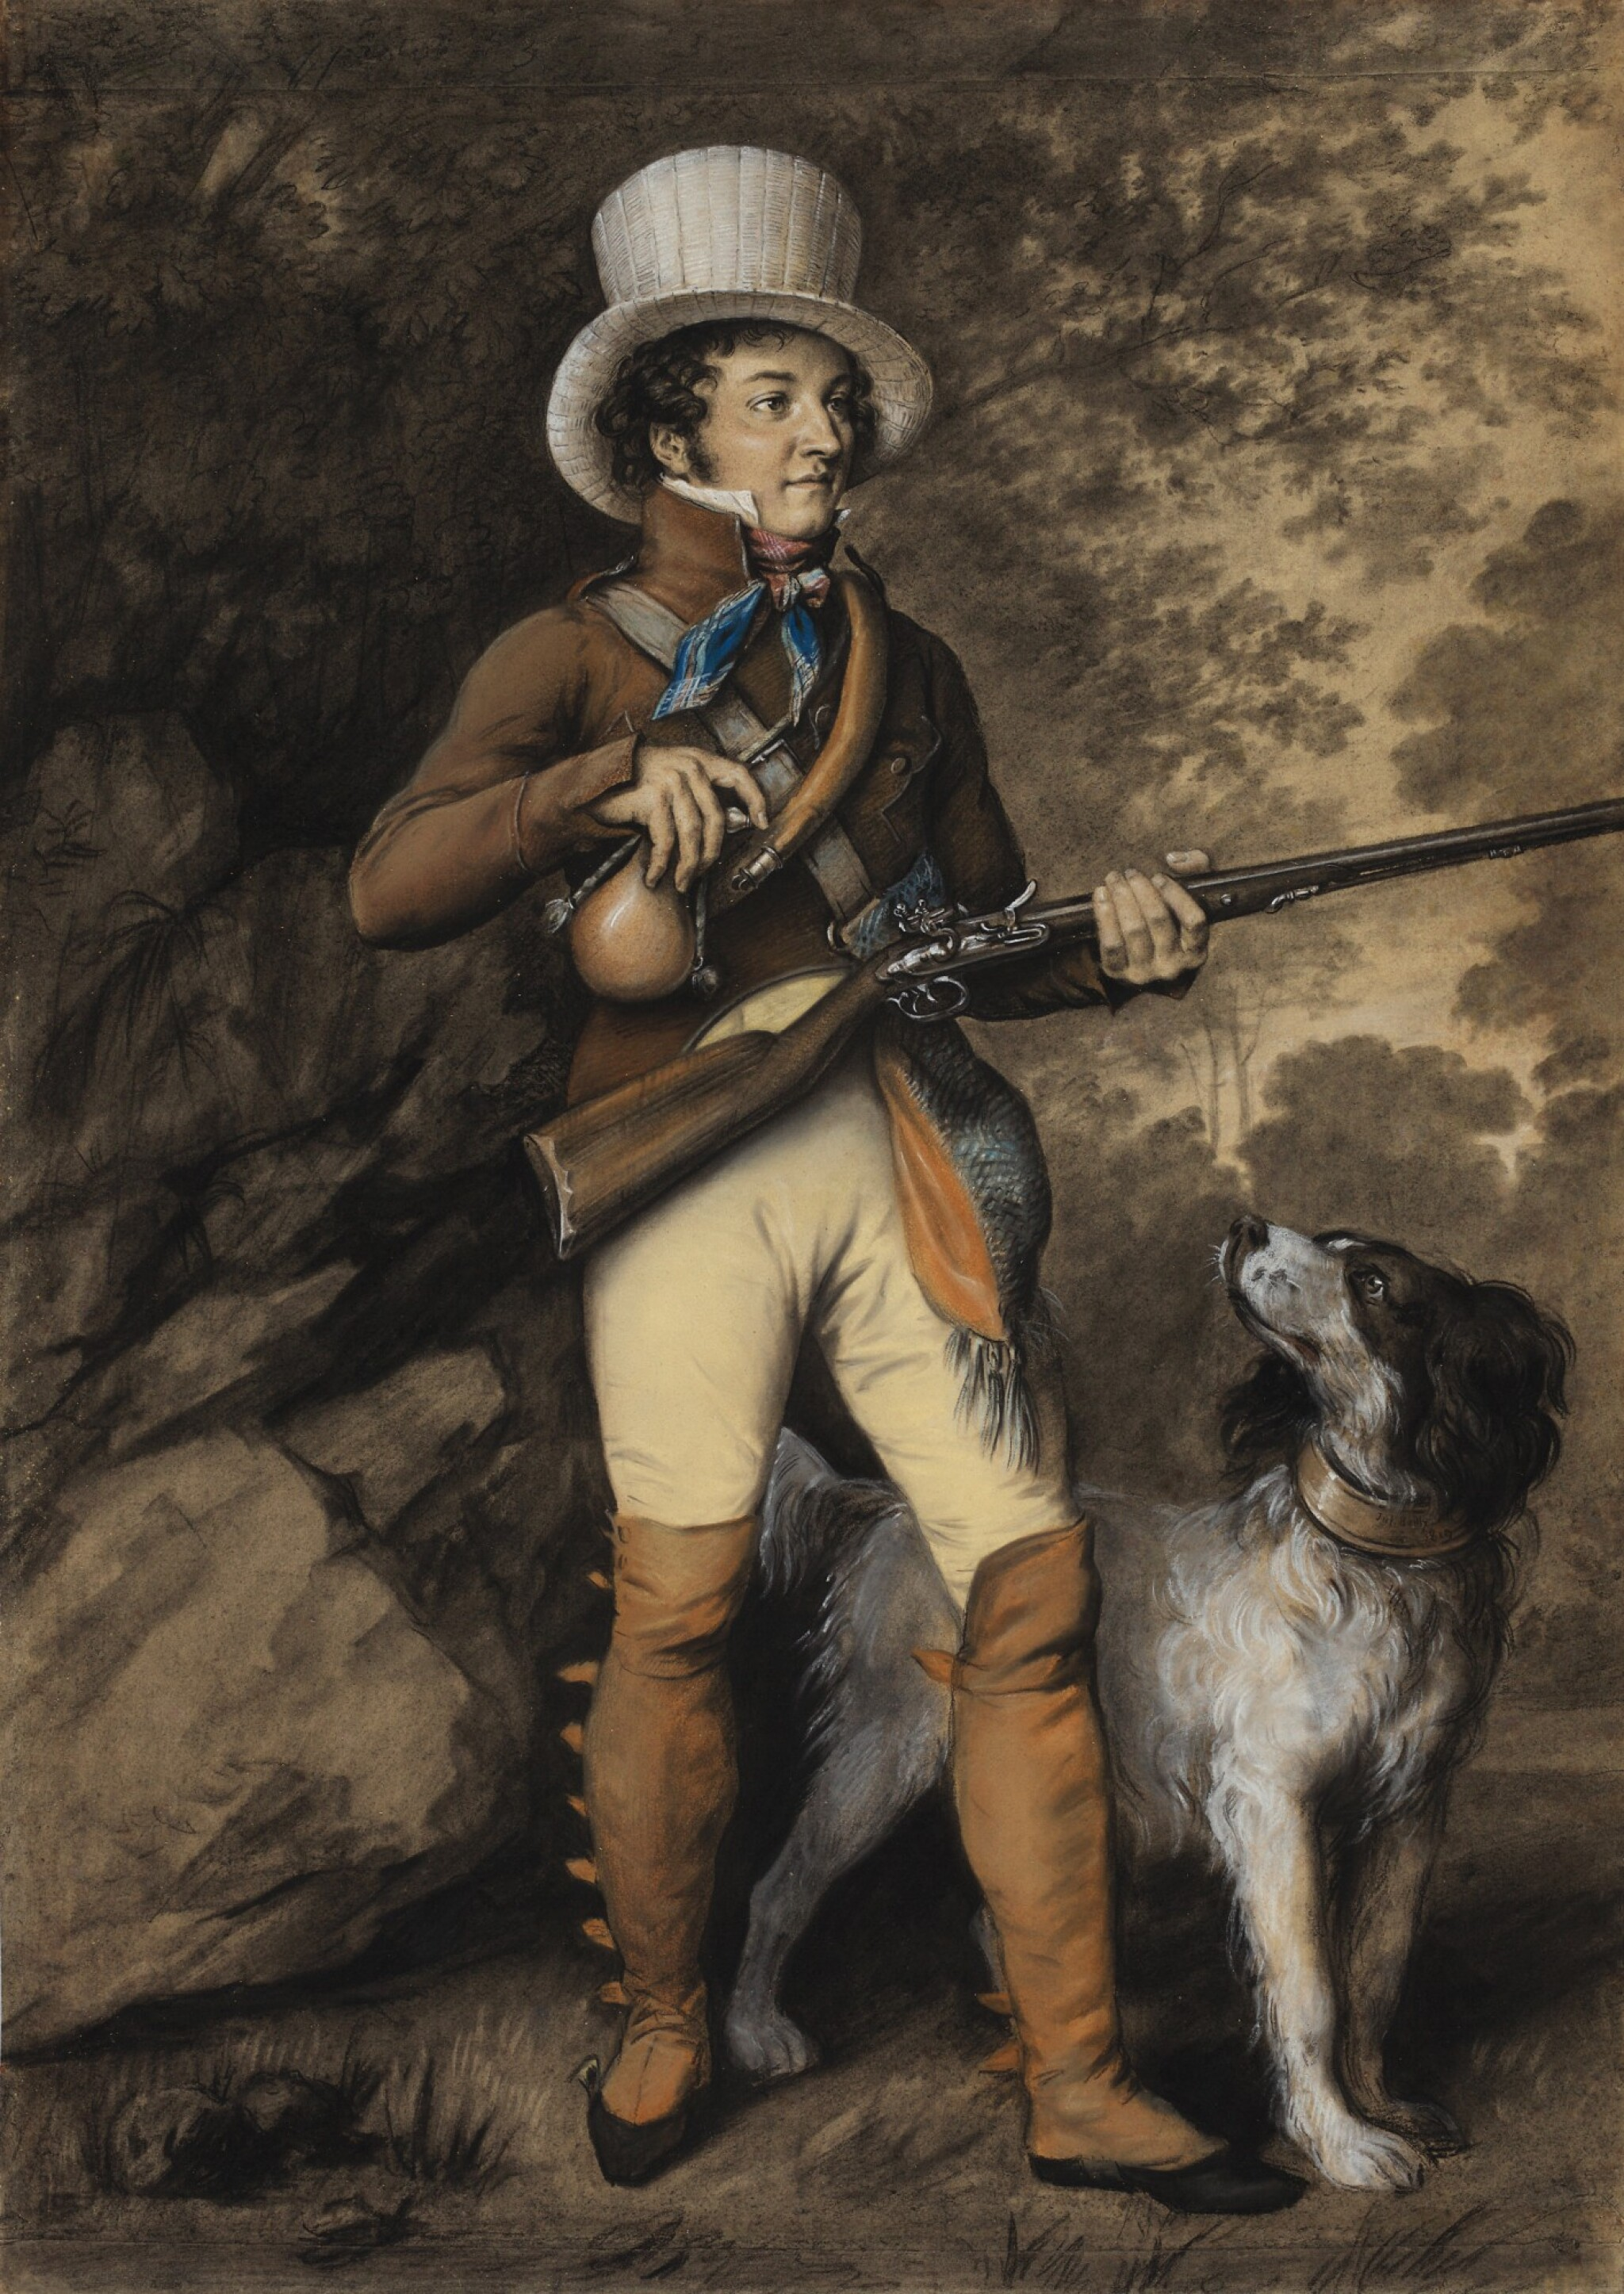 View full screen - View 1 of Lot 108. JULIEN-LÉOPOLD BOILLY, CALLED JULES BOILLY  |  PORTRAIT OF A HUNTER AND HIS DOG, TRADITIONALLY IDENTIFIED AS THE ARTIST LOUIS BOILLY, IN HUNTING COSTUME.